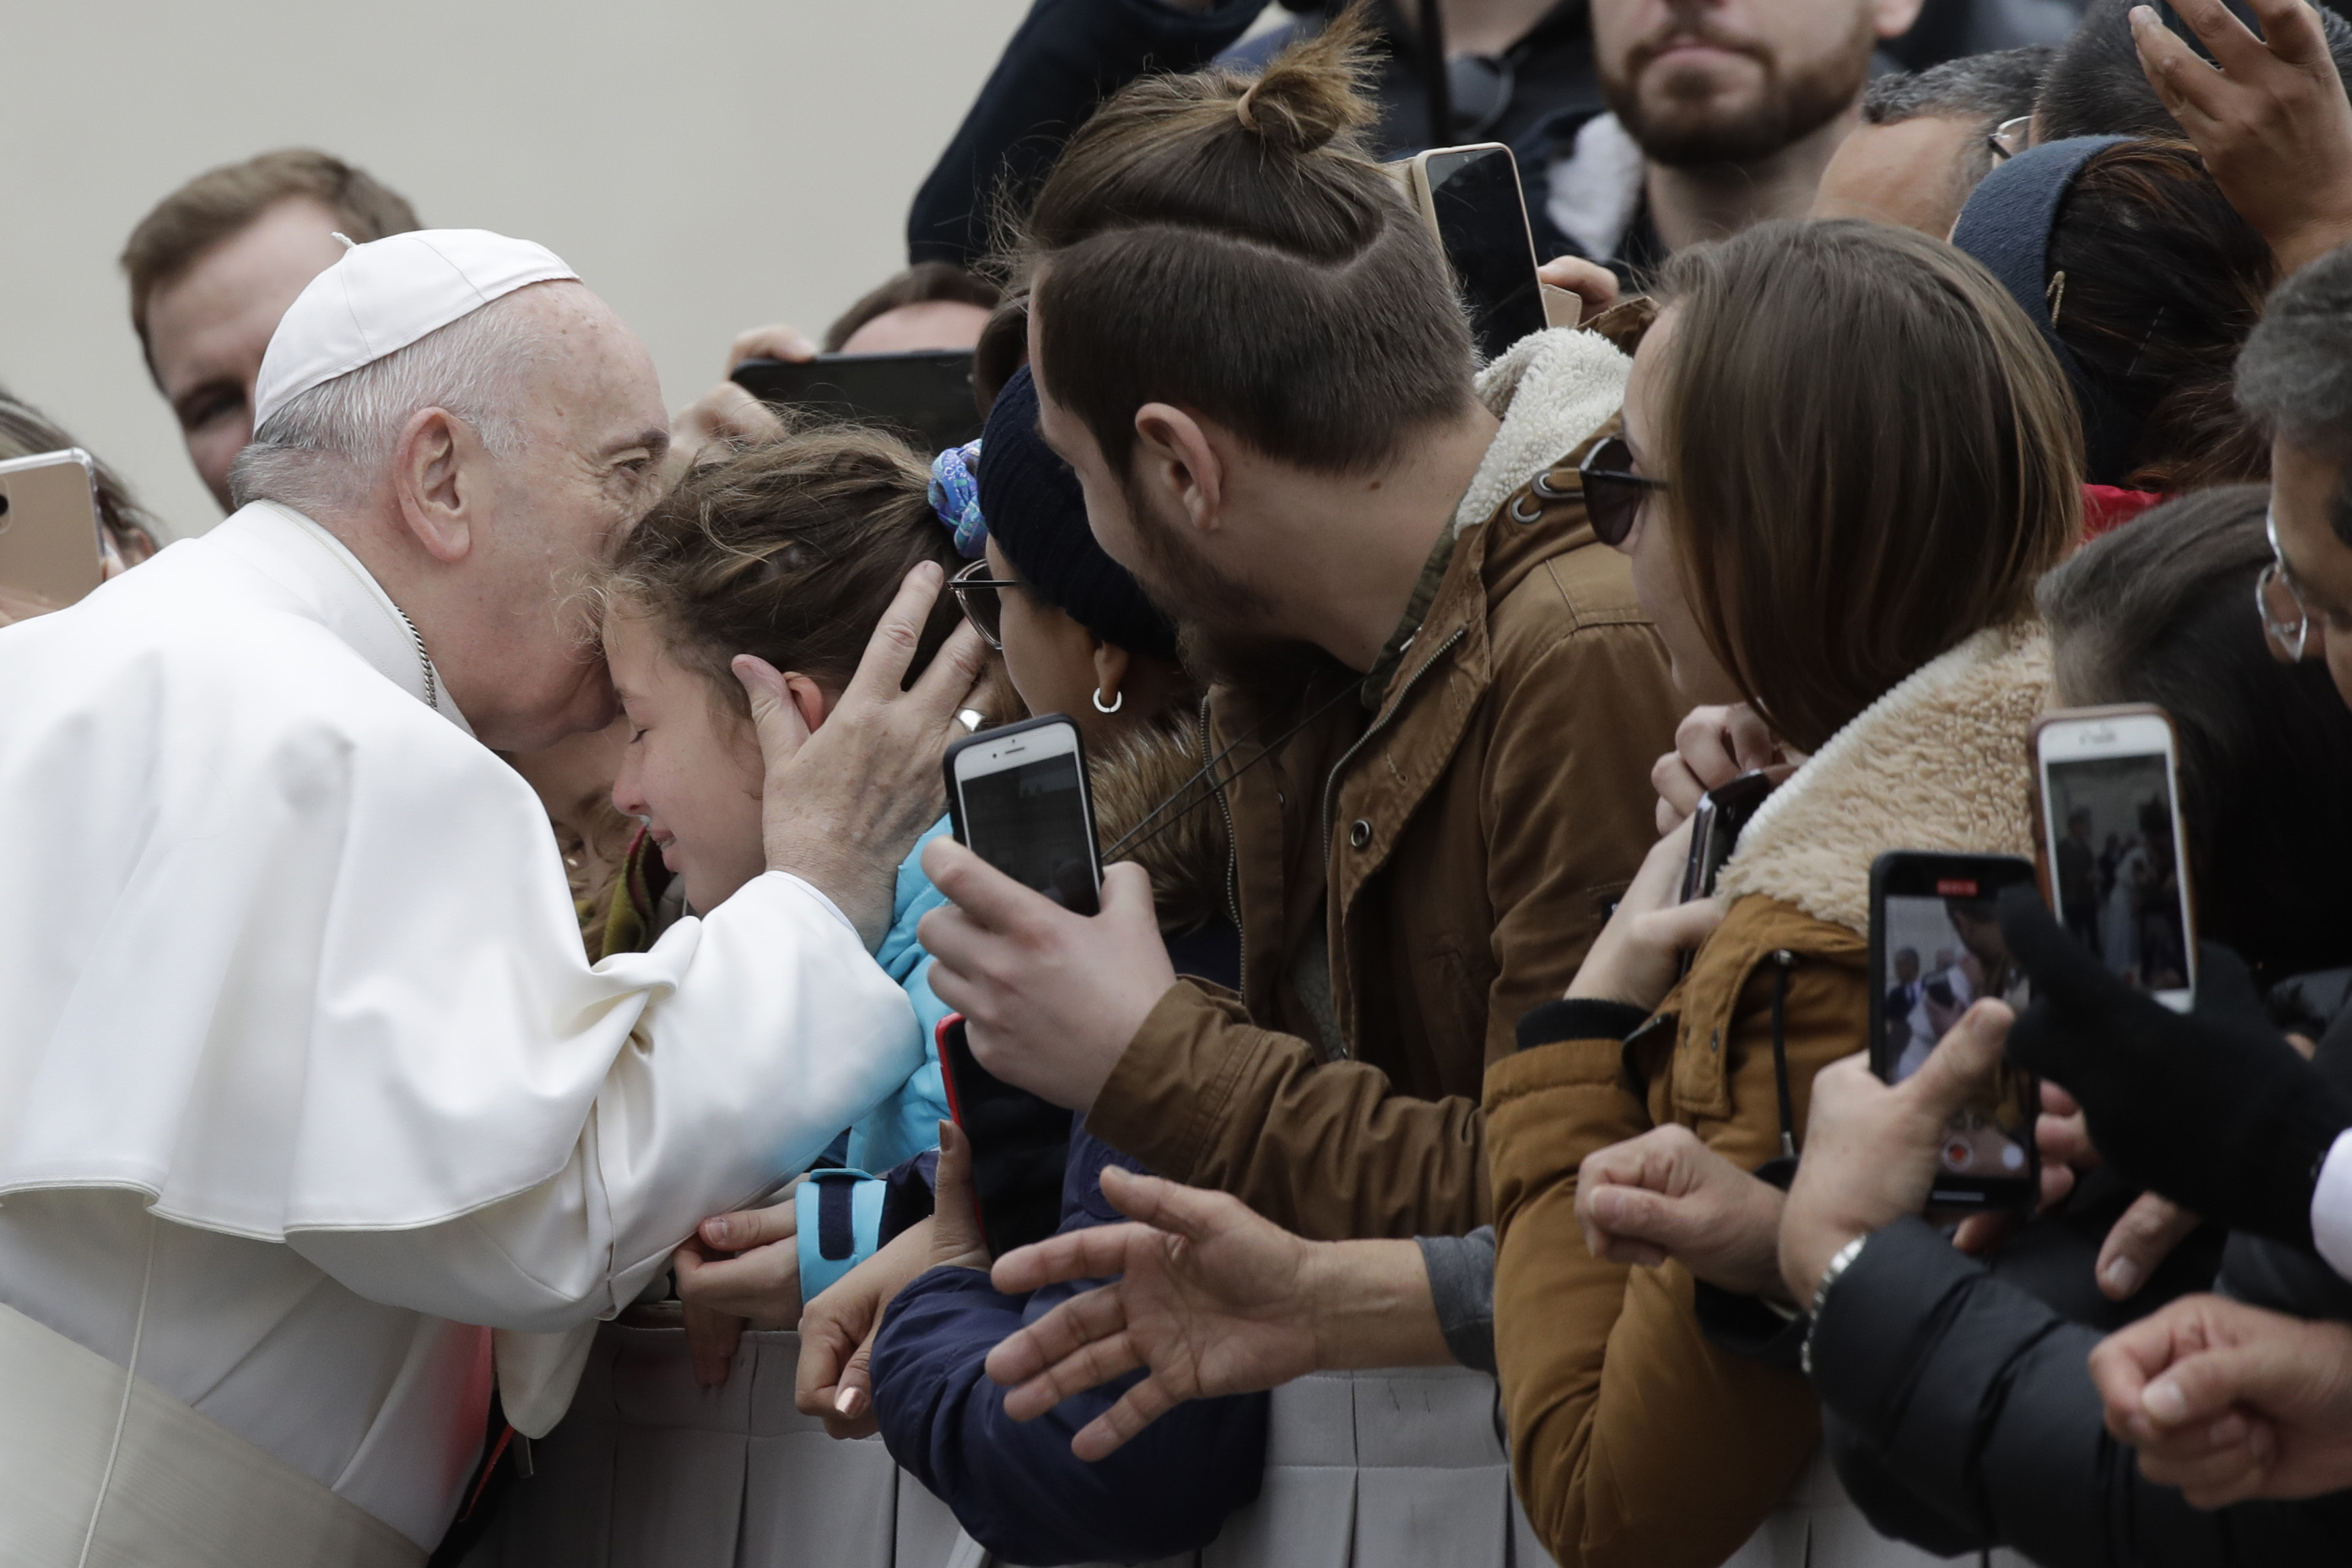 Pope Francis kisses a child in St. Peter's Square at the Vatican before leaving after his weekly general audience, on Feb. 26, 2020.